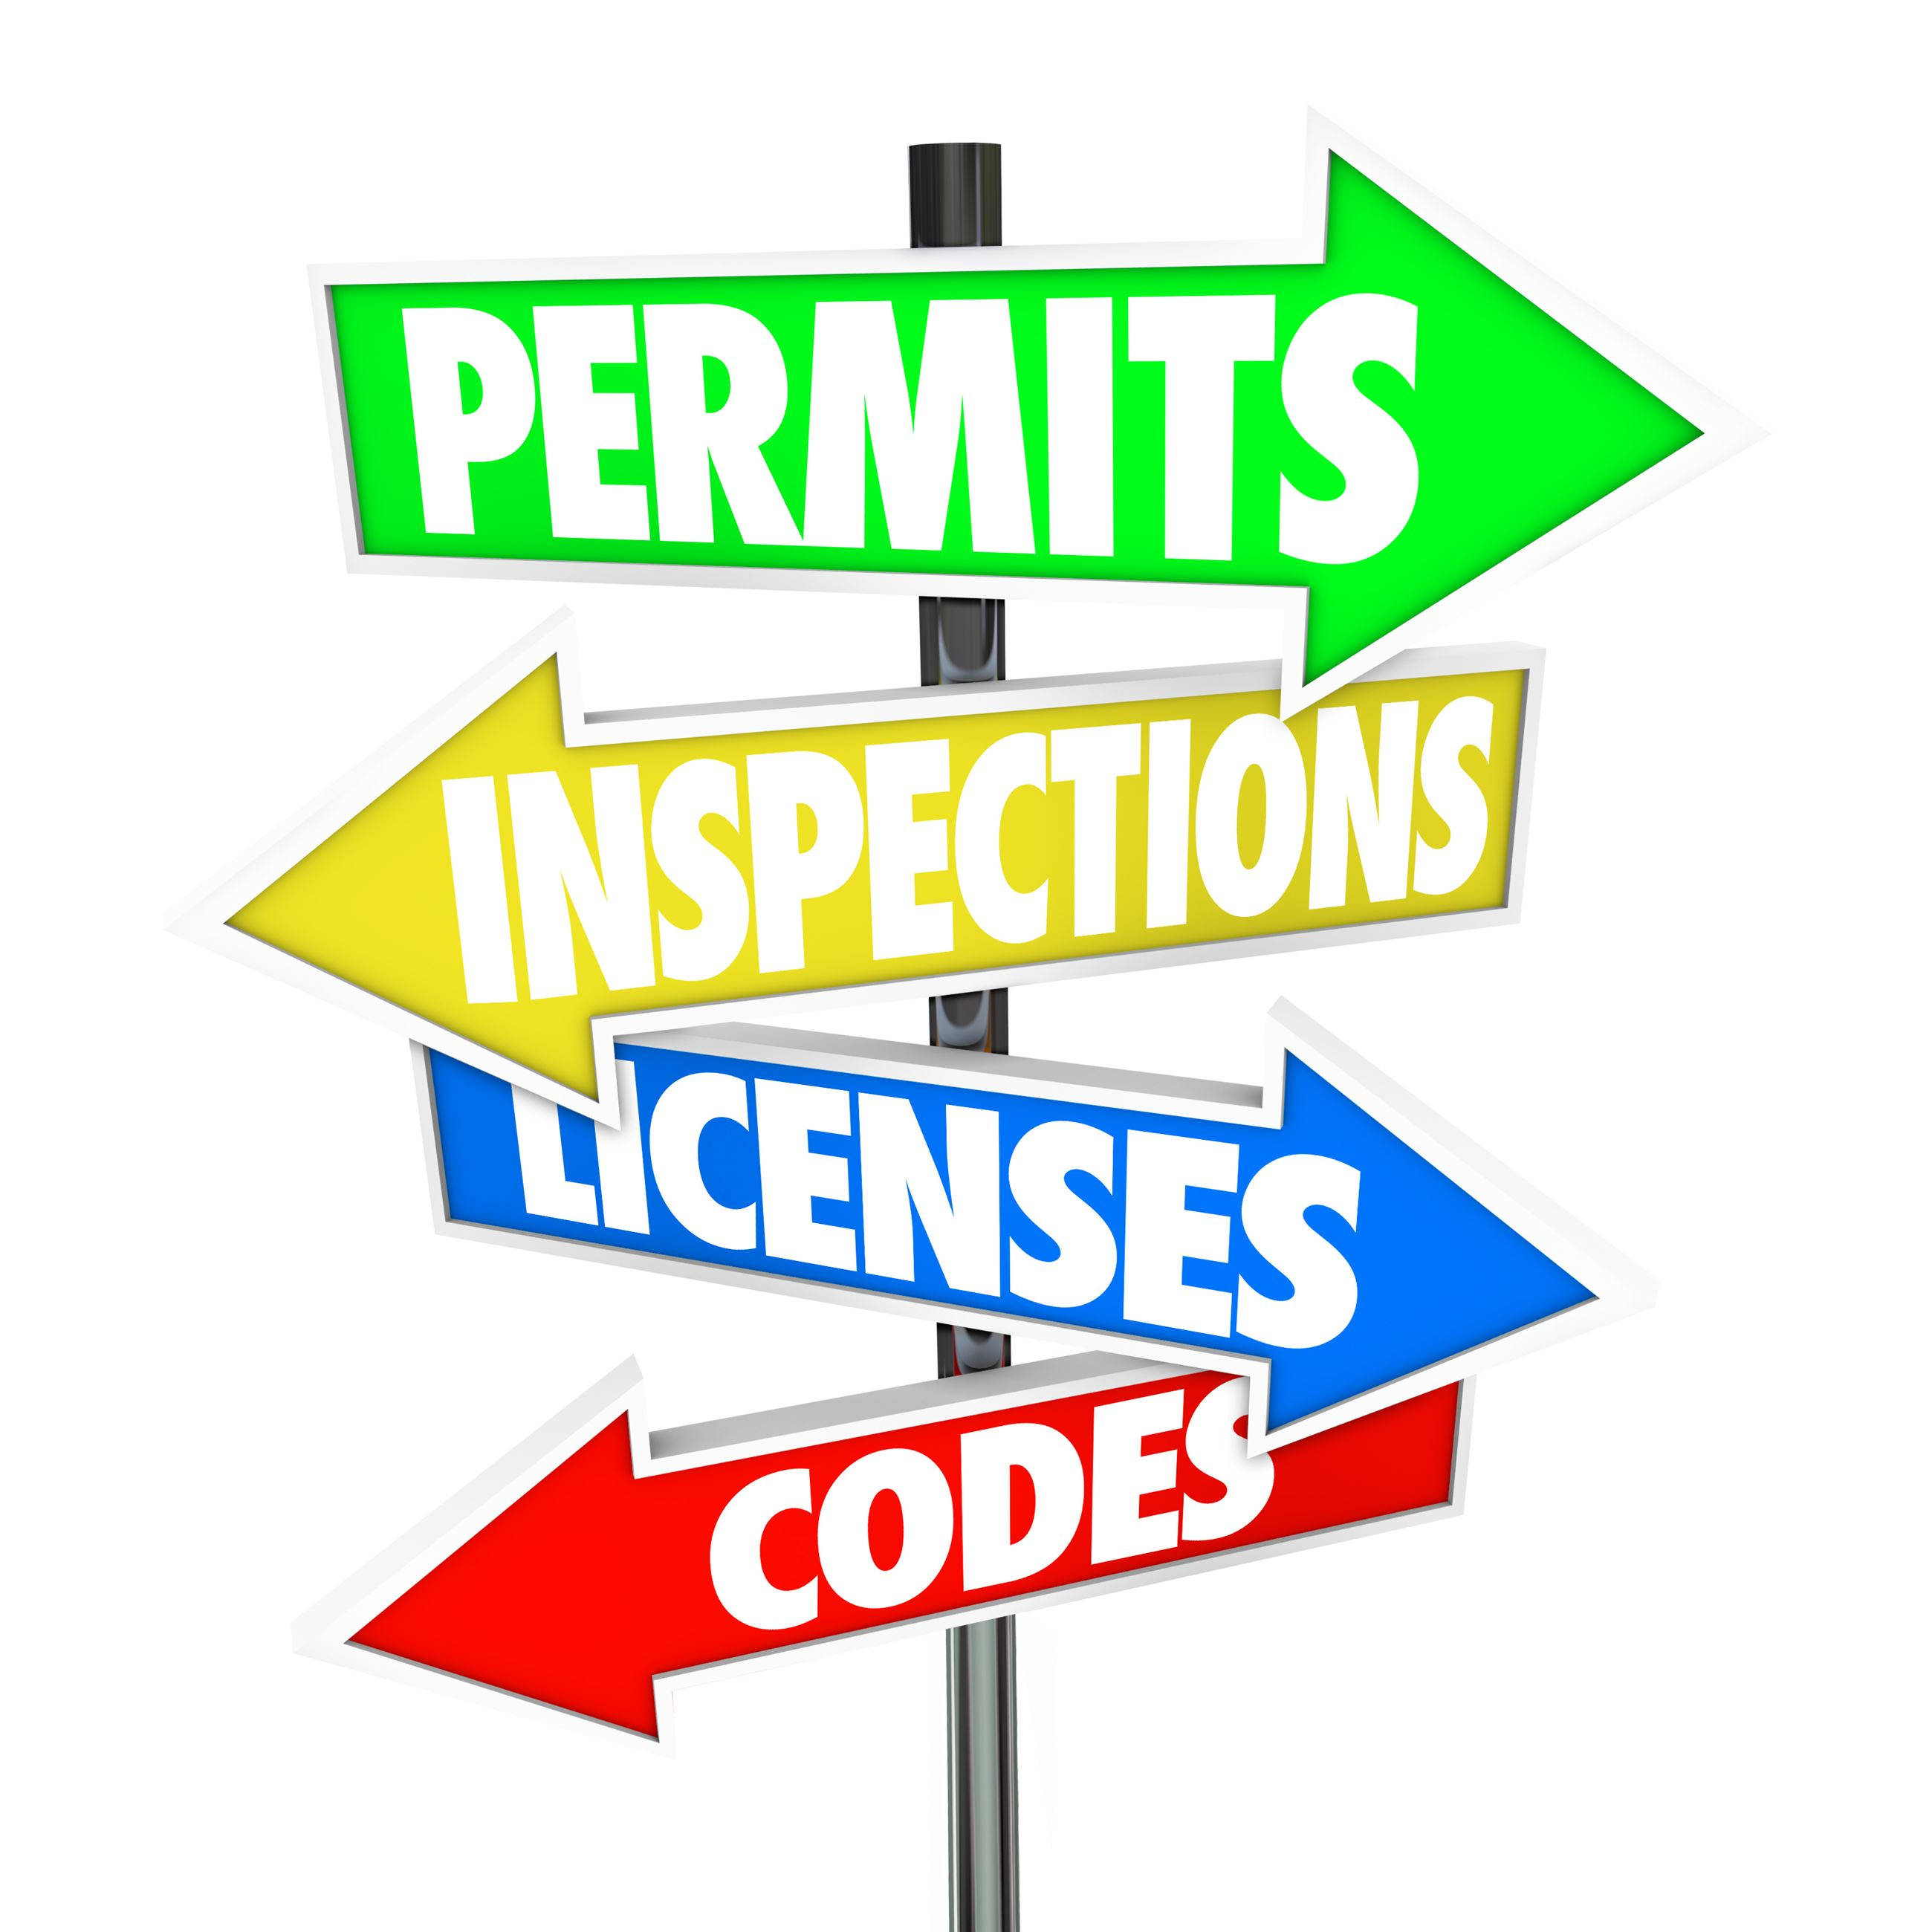 Directional permit sign